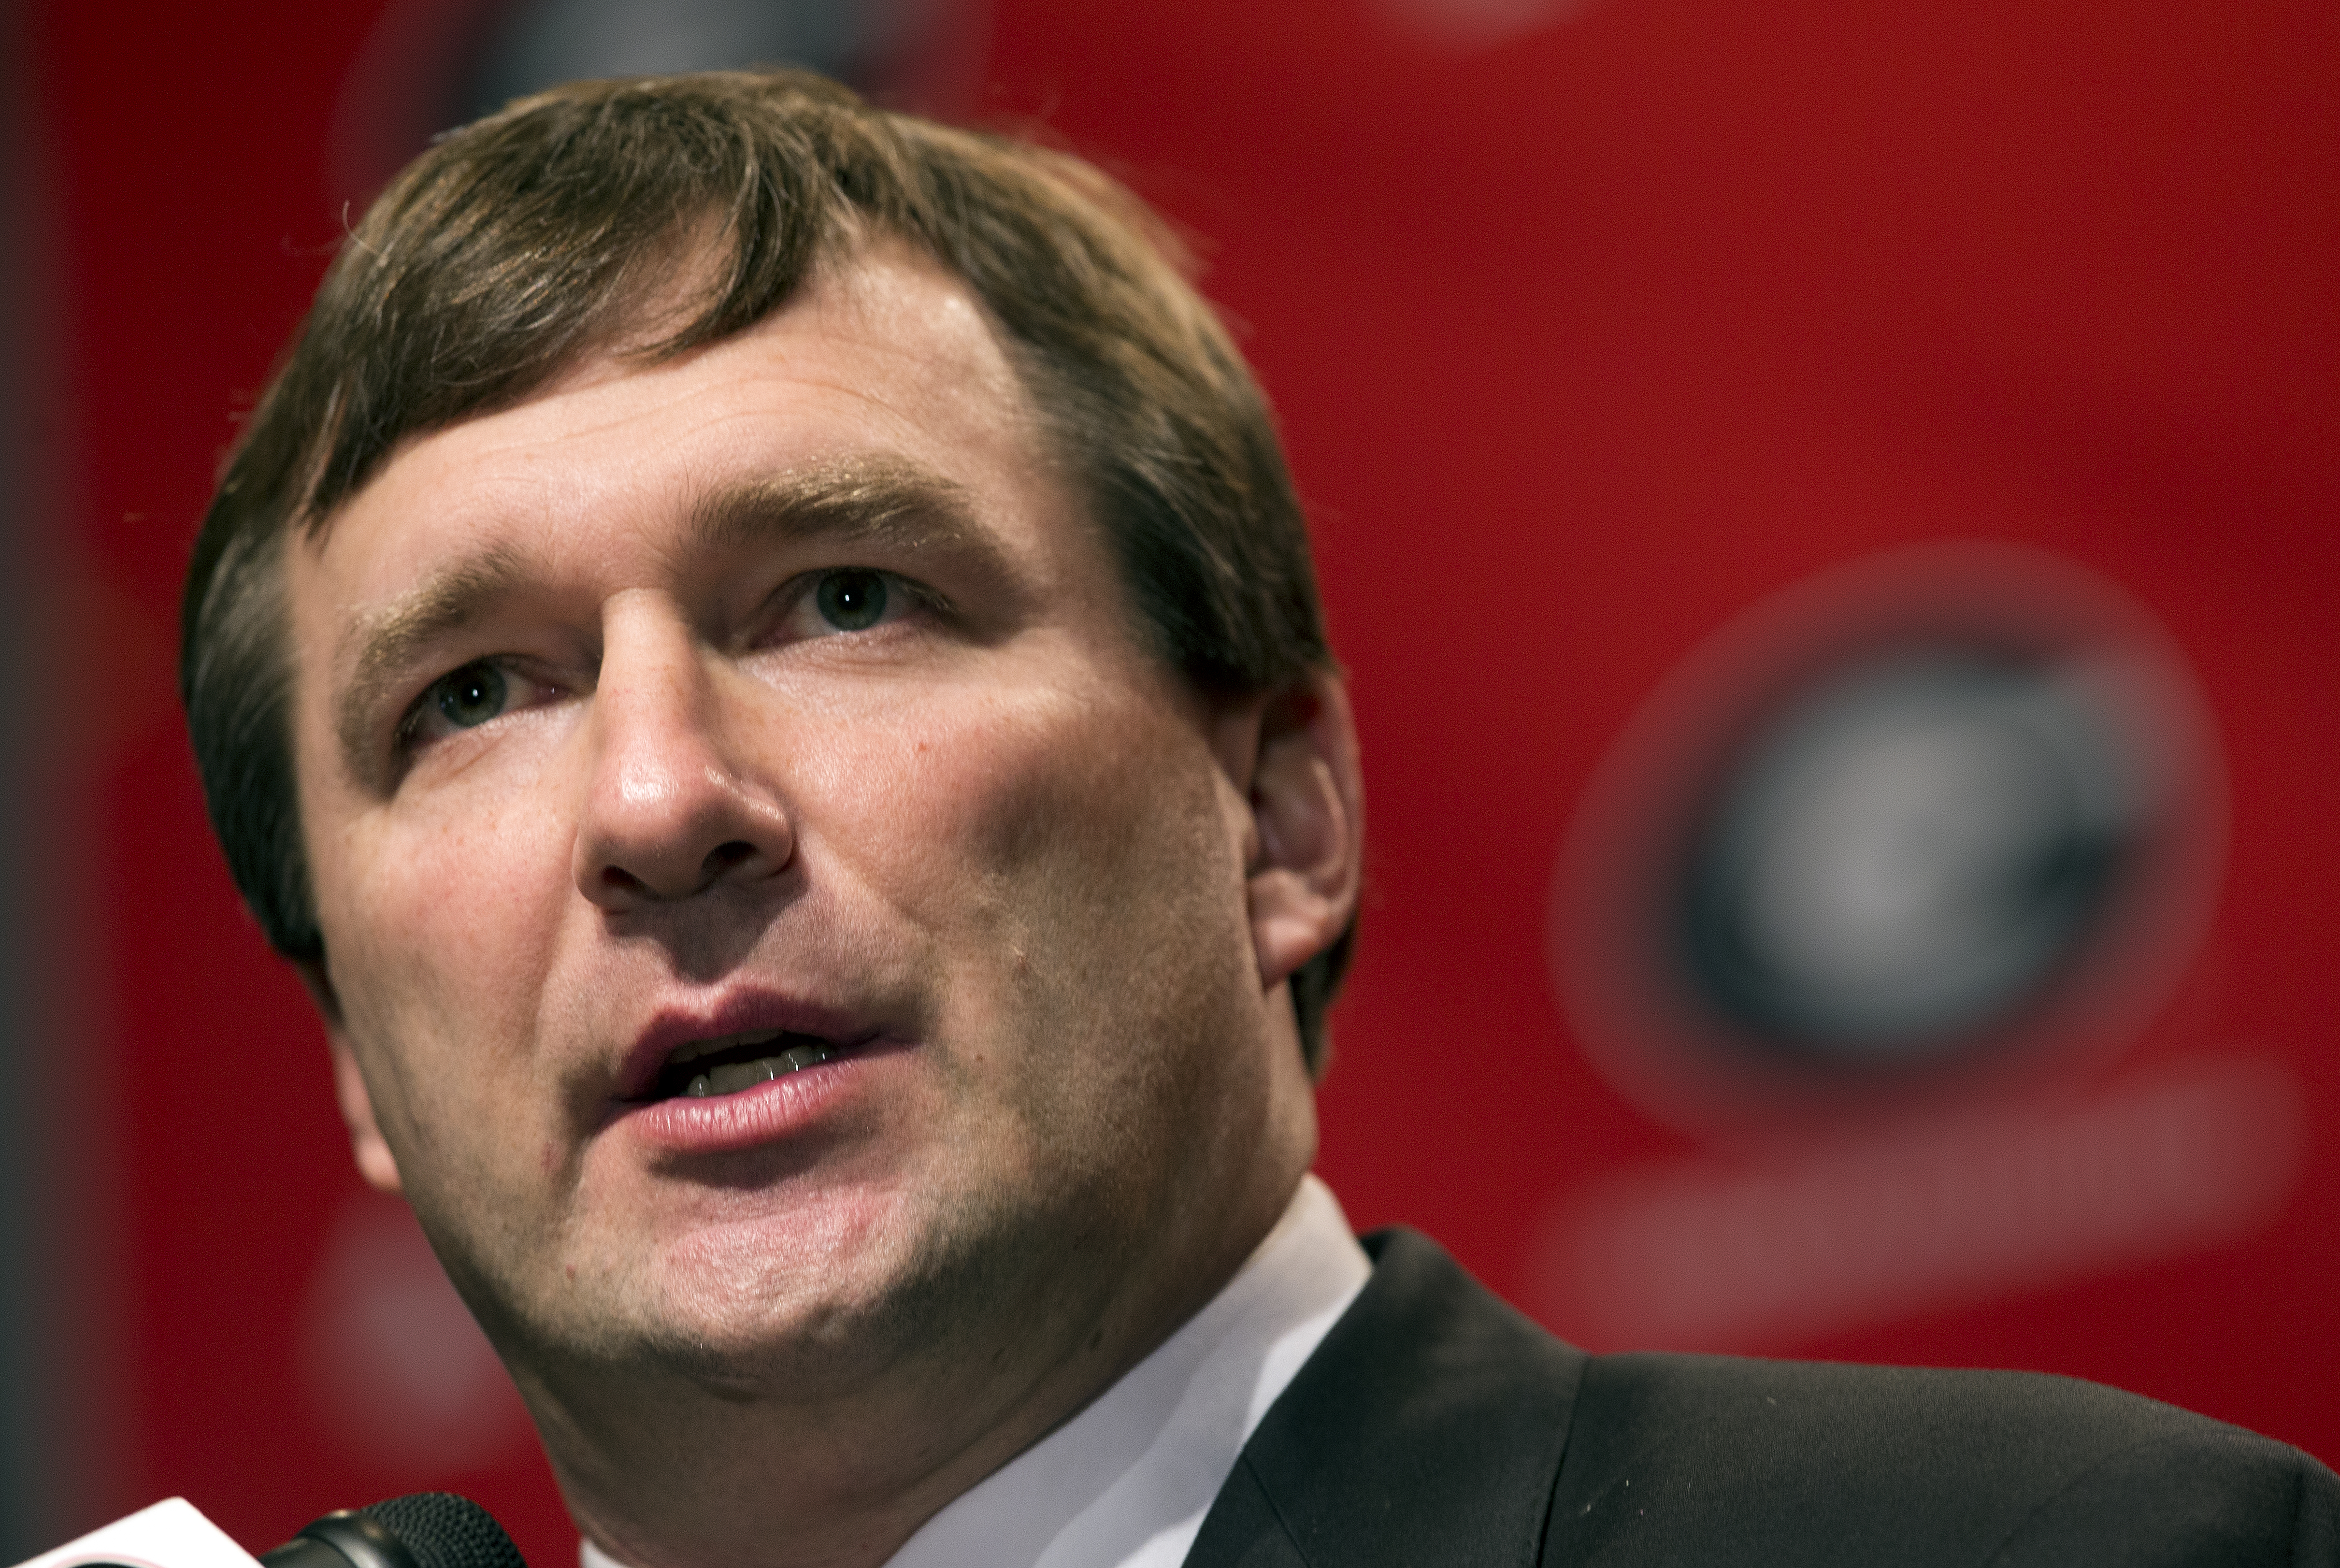 Alabama defensive coordinator Kirby Smart listens to a question from a reporter during a press conference where he was introduced as Georgia's new head football coach  Monday, Dec. 7, 2015, in Athens, Ga. Smart will stay with the Crimson Tide through the